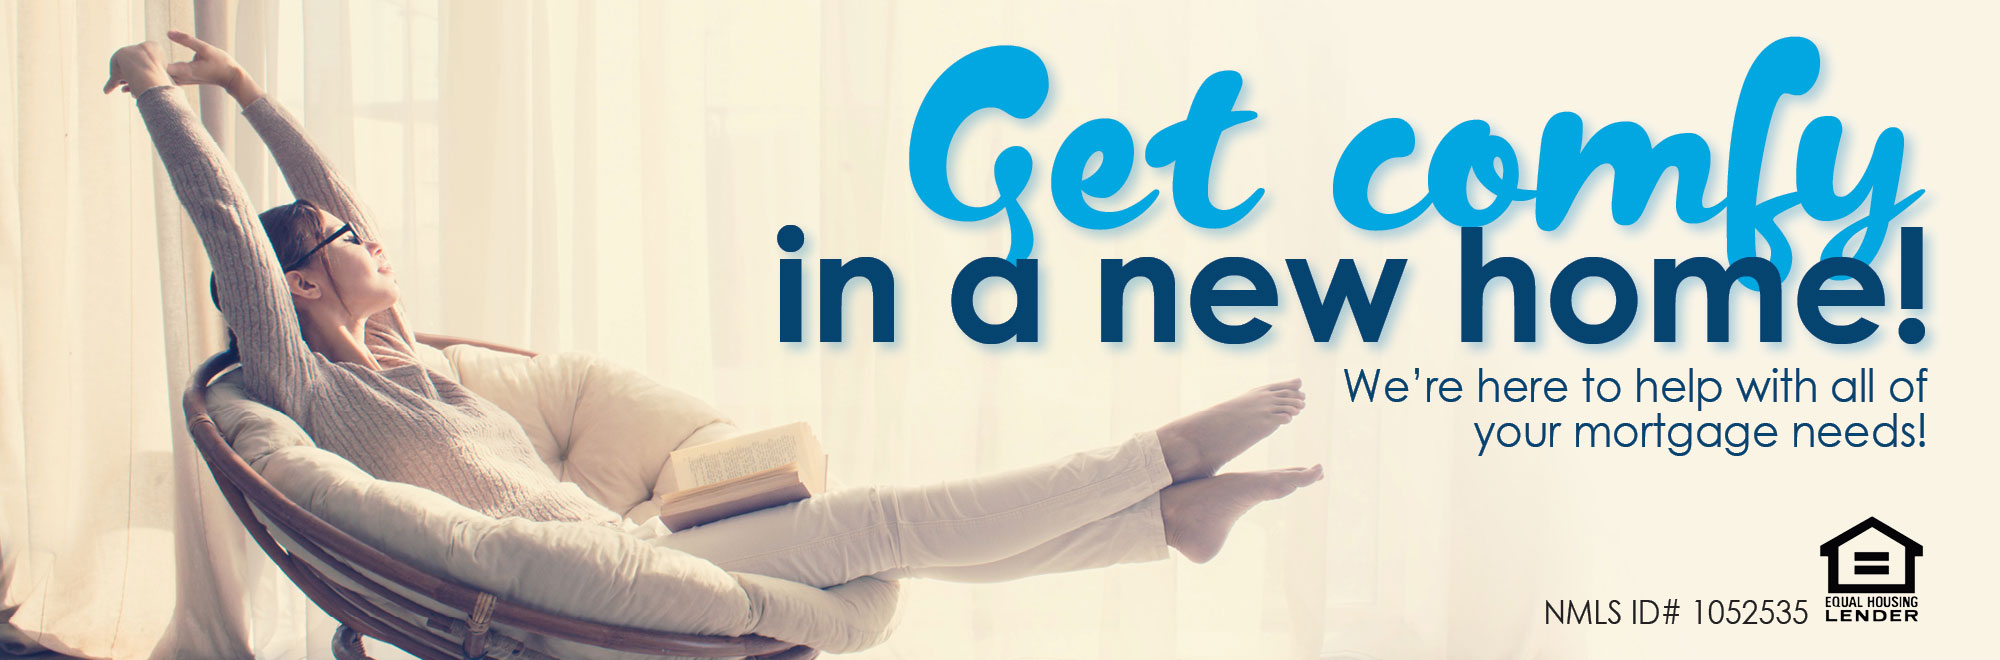 Get comfy in a new home! We're here to help with all of your mortgage needs!